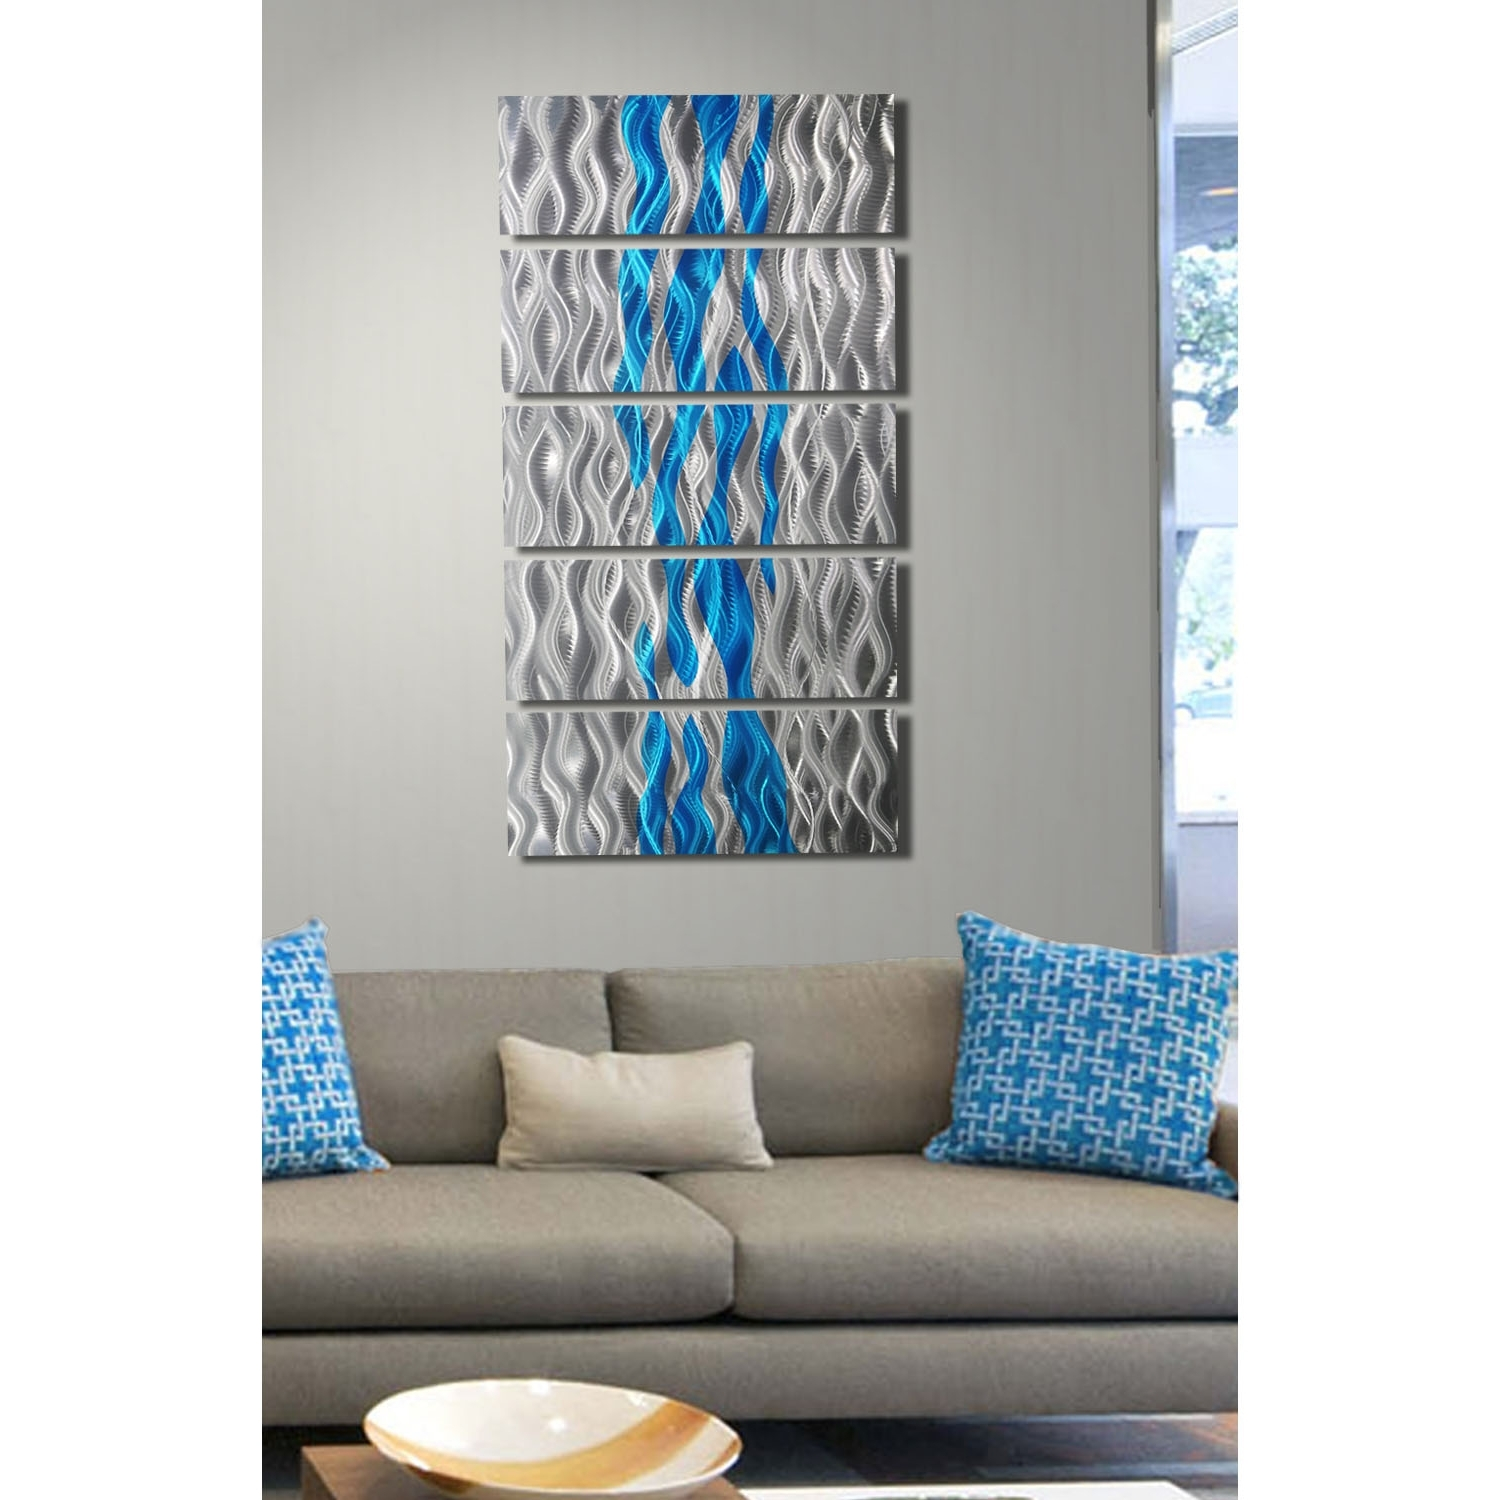 Aqua Oceana – Silver And Aqua Metal Wall Art – 5 Panel Wall Décor Throughout Well Known Turquoise Wall Art (View 3 of 20)